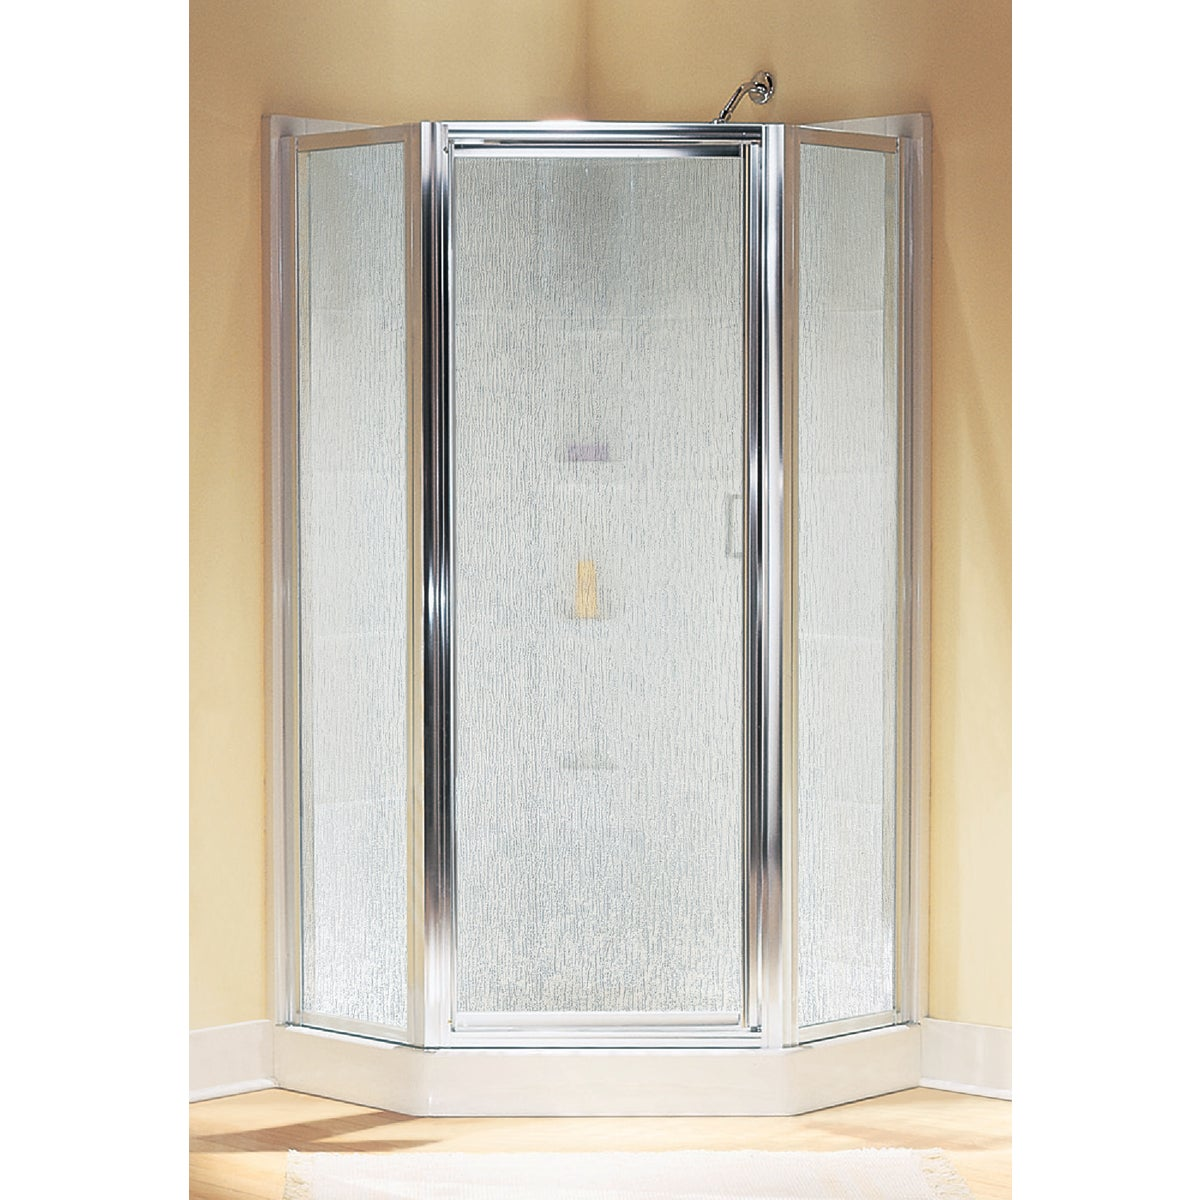 SILVER NEO SHOWER DOOR - SP2276A-38S by Sterling Doors